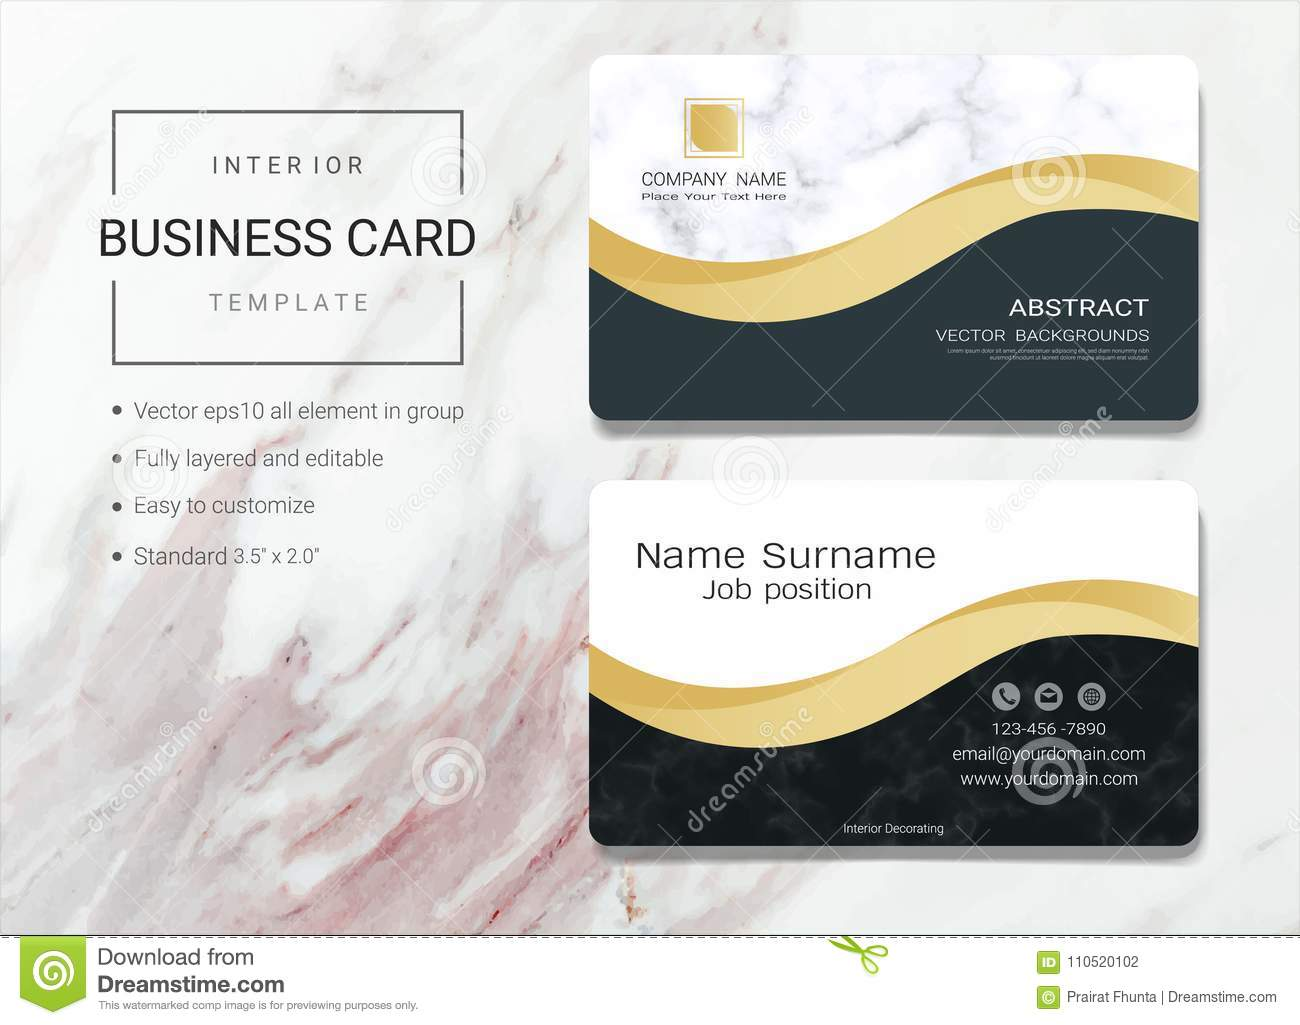 Interior business card or name card template stock vector download comp accmission Gallery